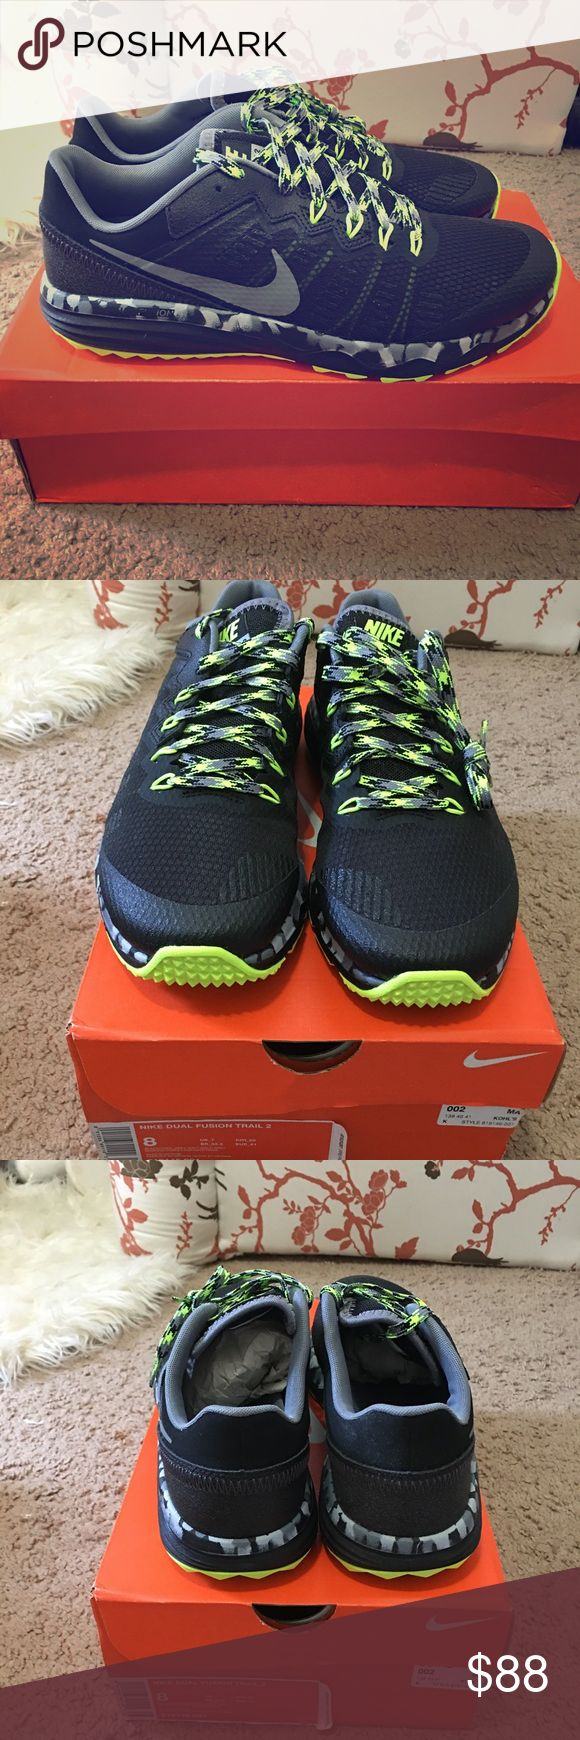 Brand New Nike Dual Fusion Trail 2 size 8 Brand New in the box 📦 Nike Dual Fusion Trail 2 men's size 8. Nike Shoes Sneakers